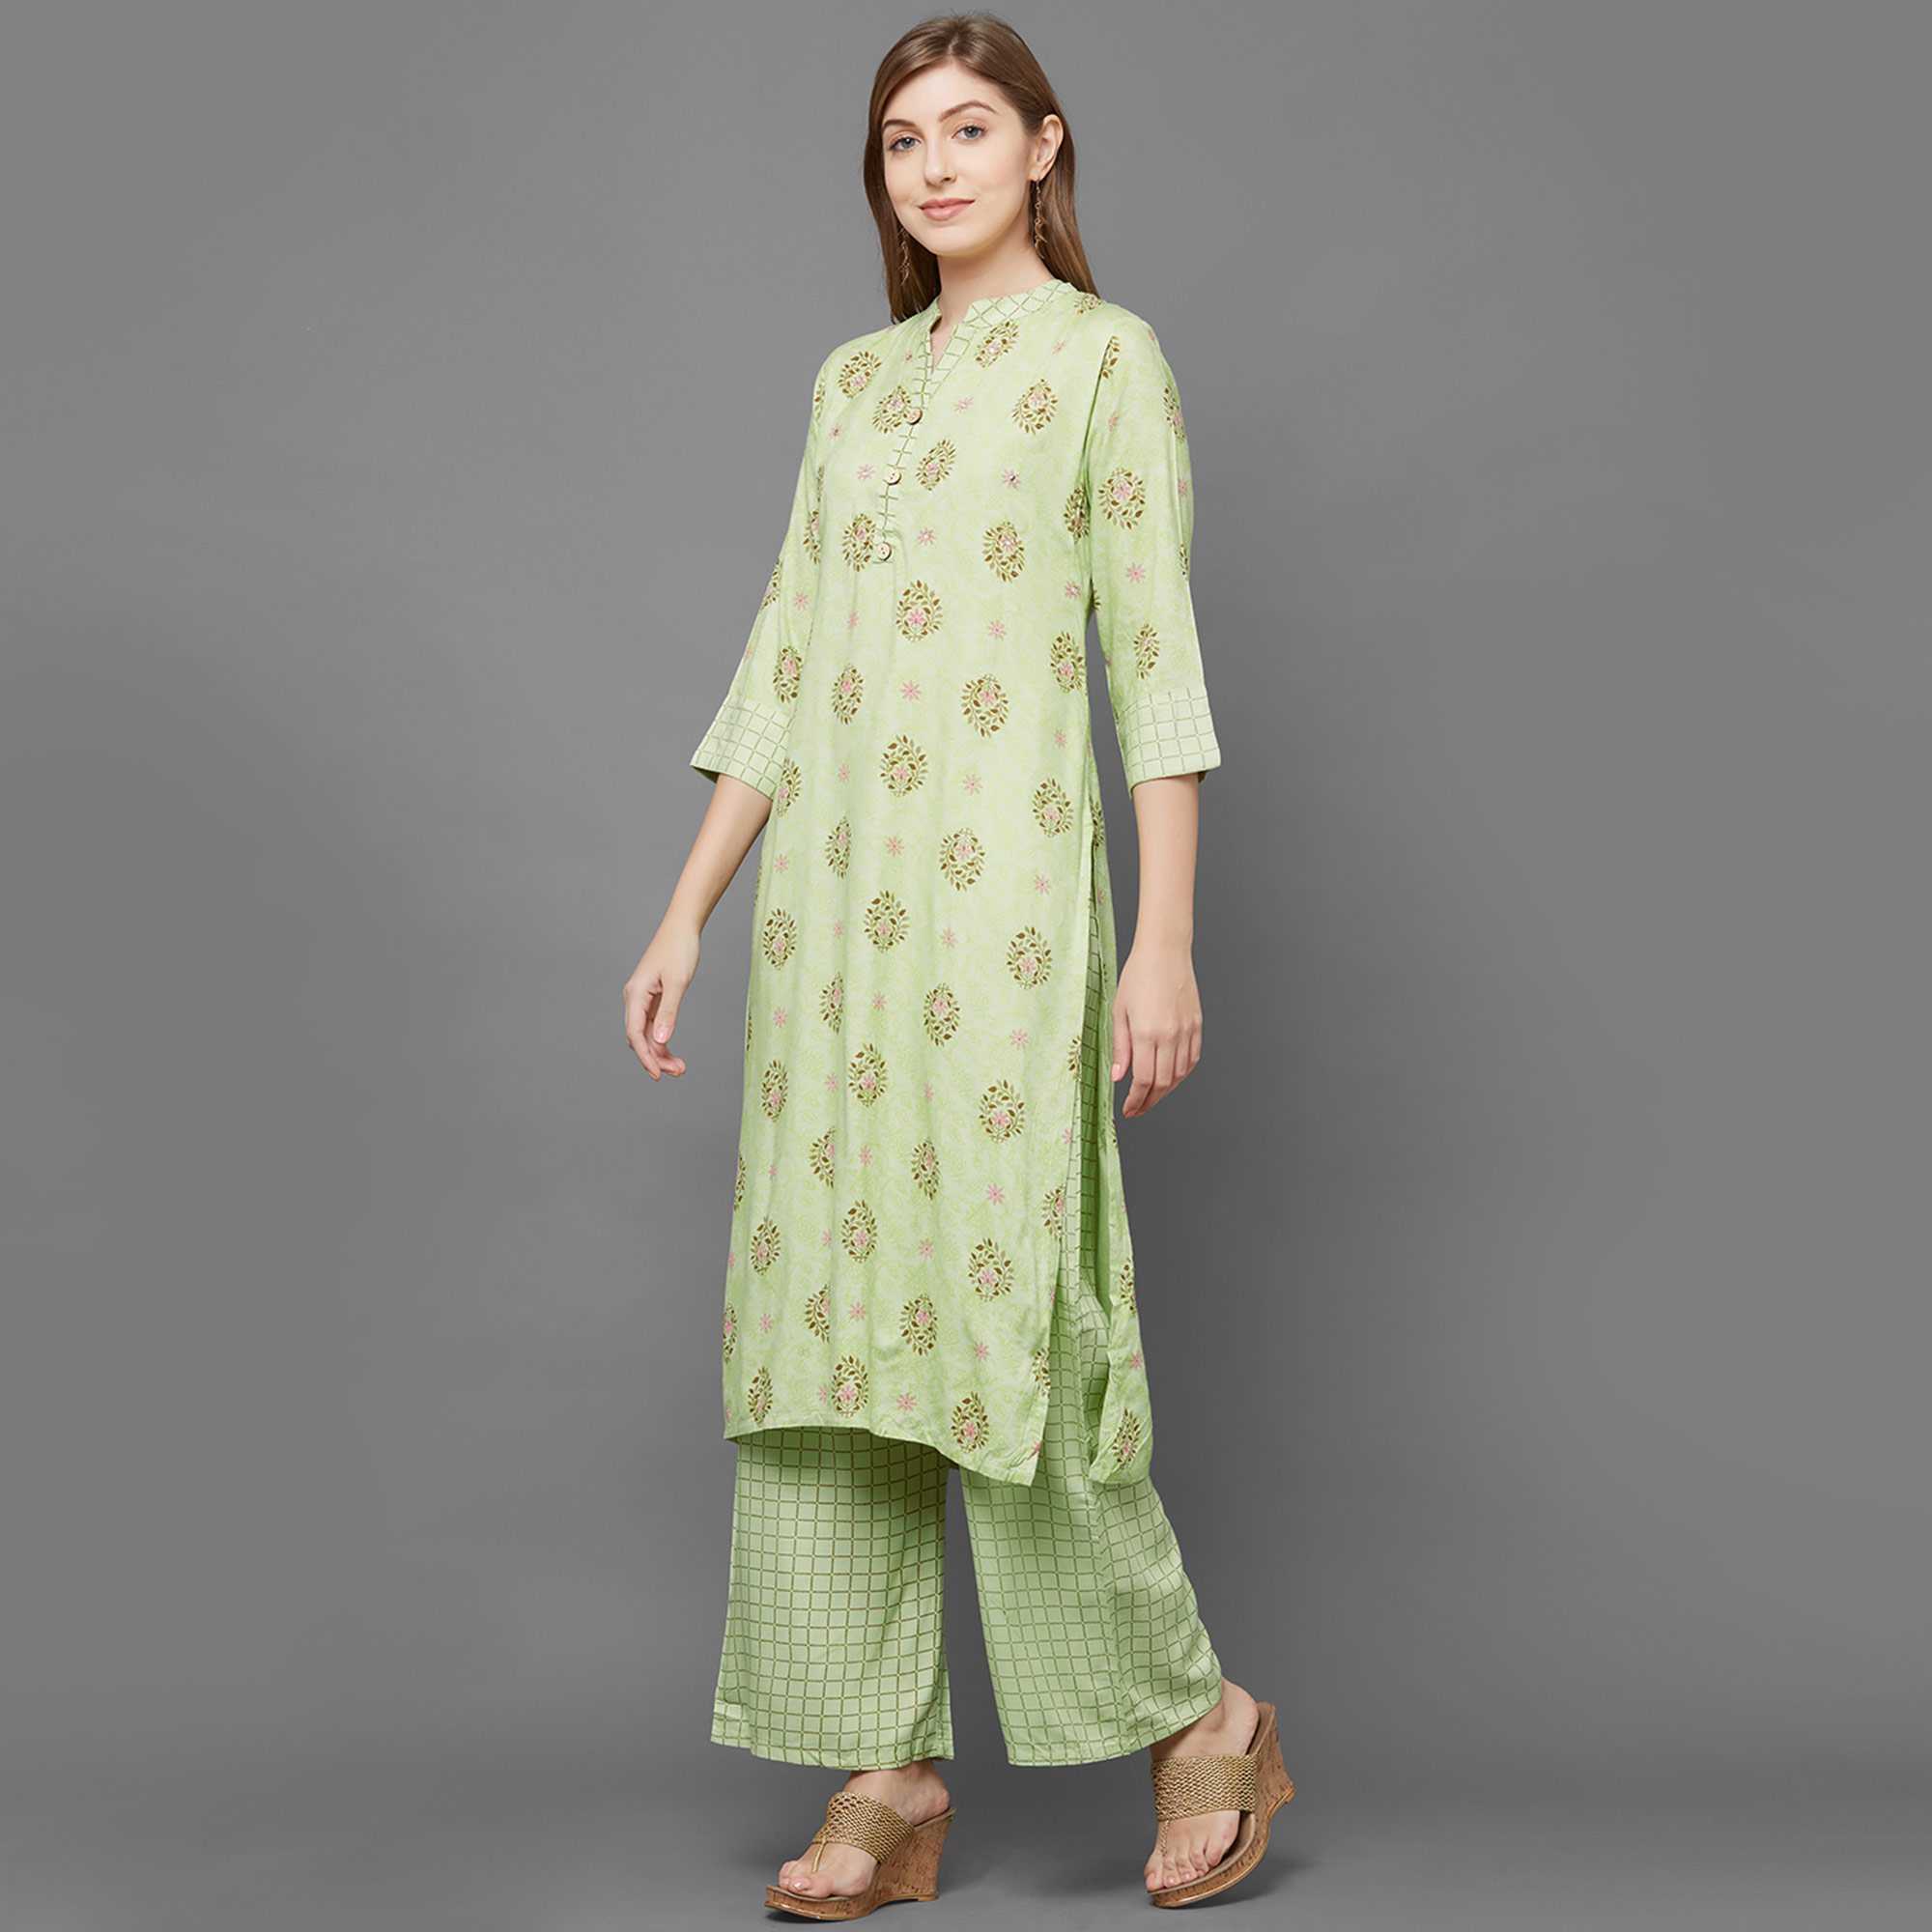 Trendy Green Colored Partywear Printed Cotton Kurti-Palazzo Set